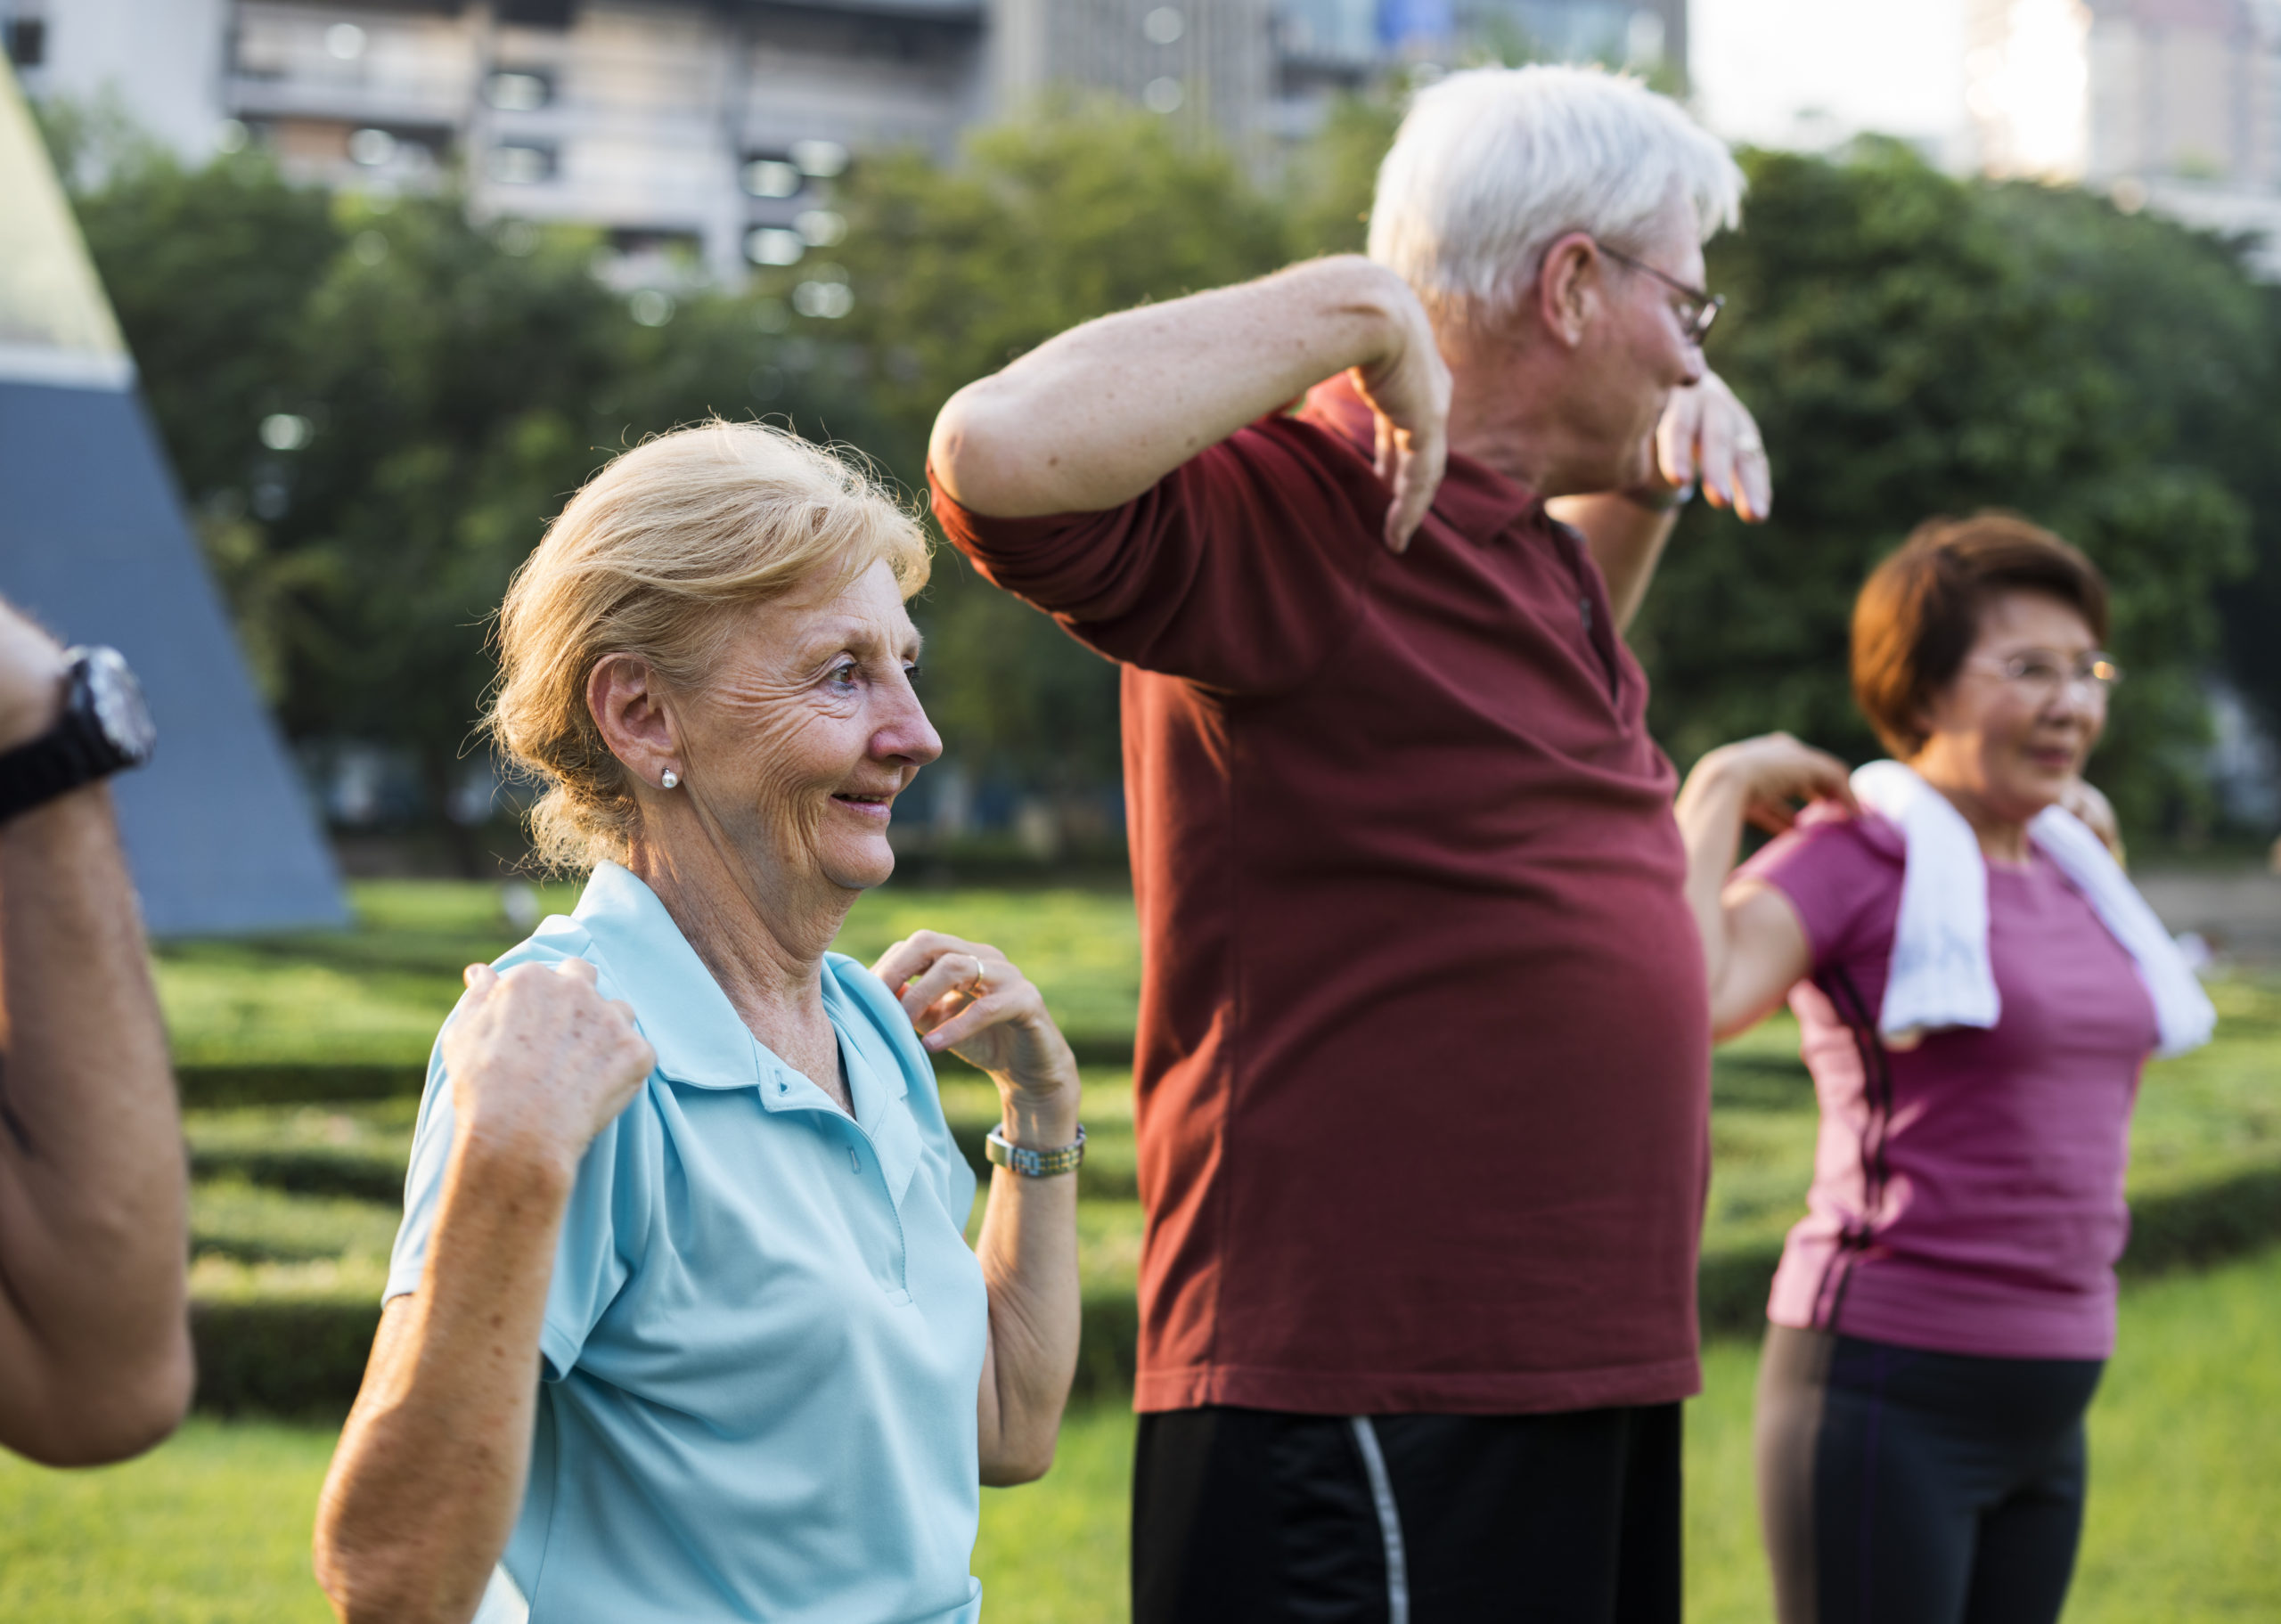 mature adults exercising in park